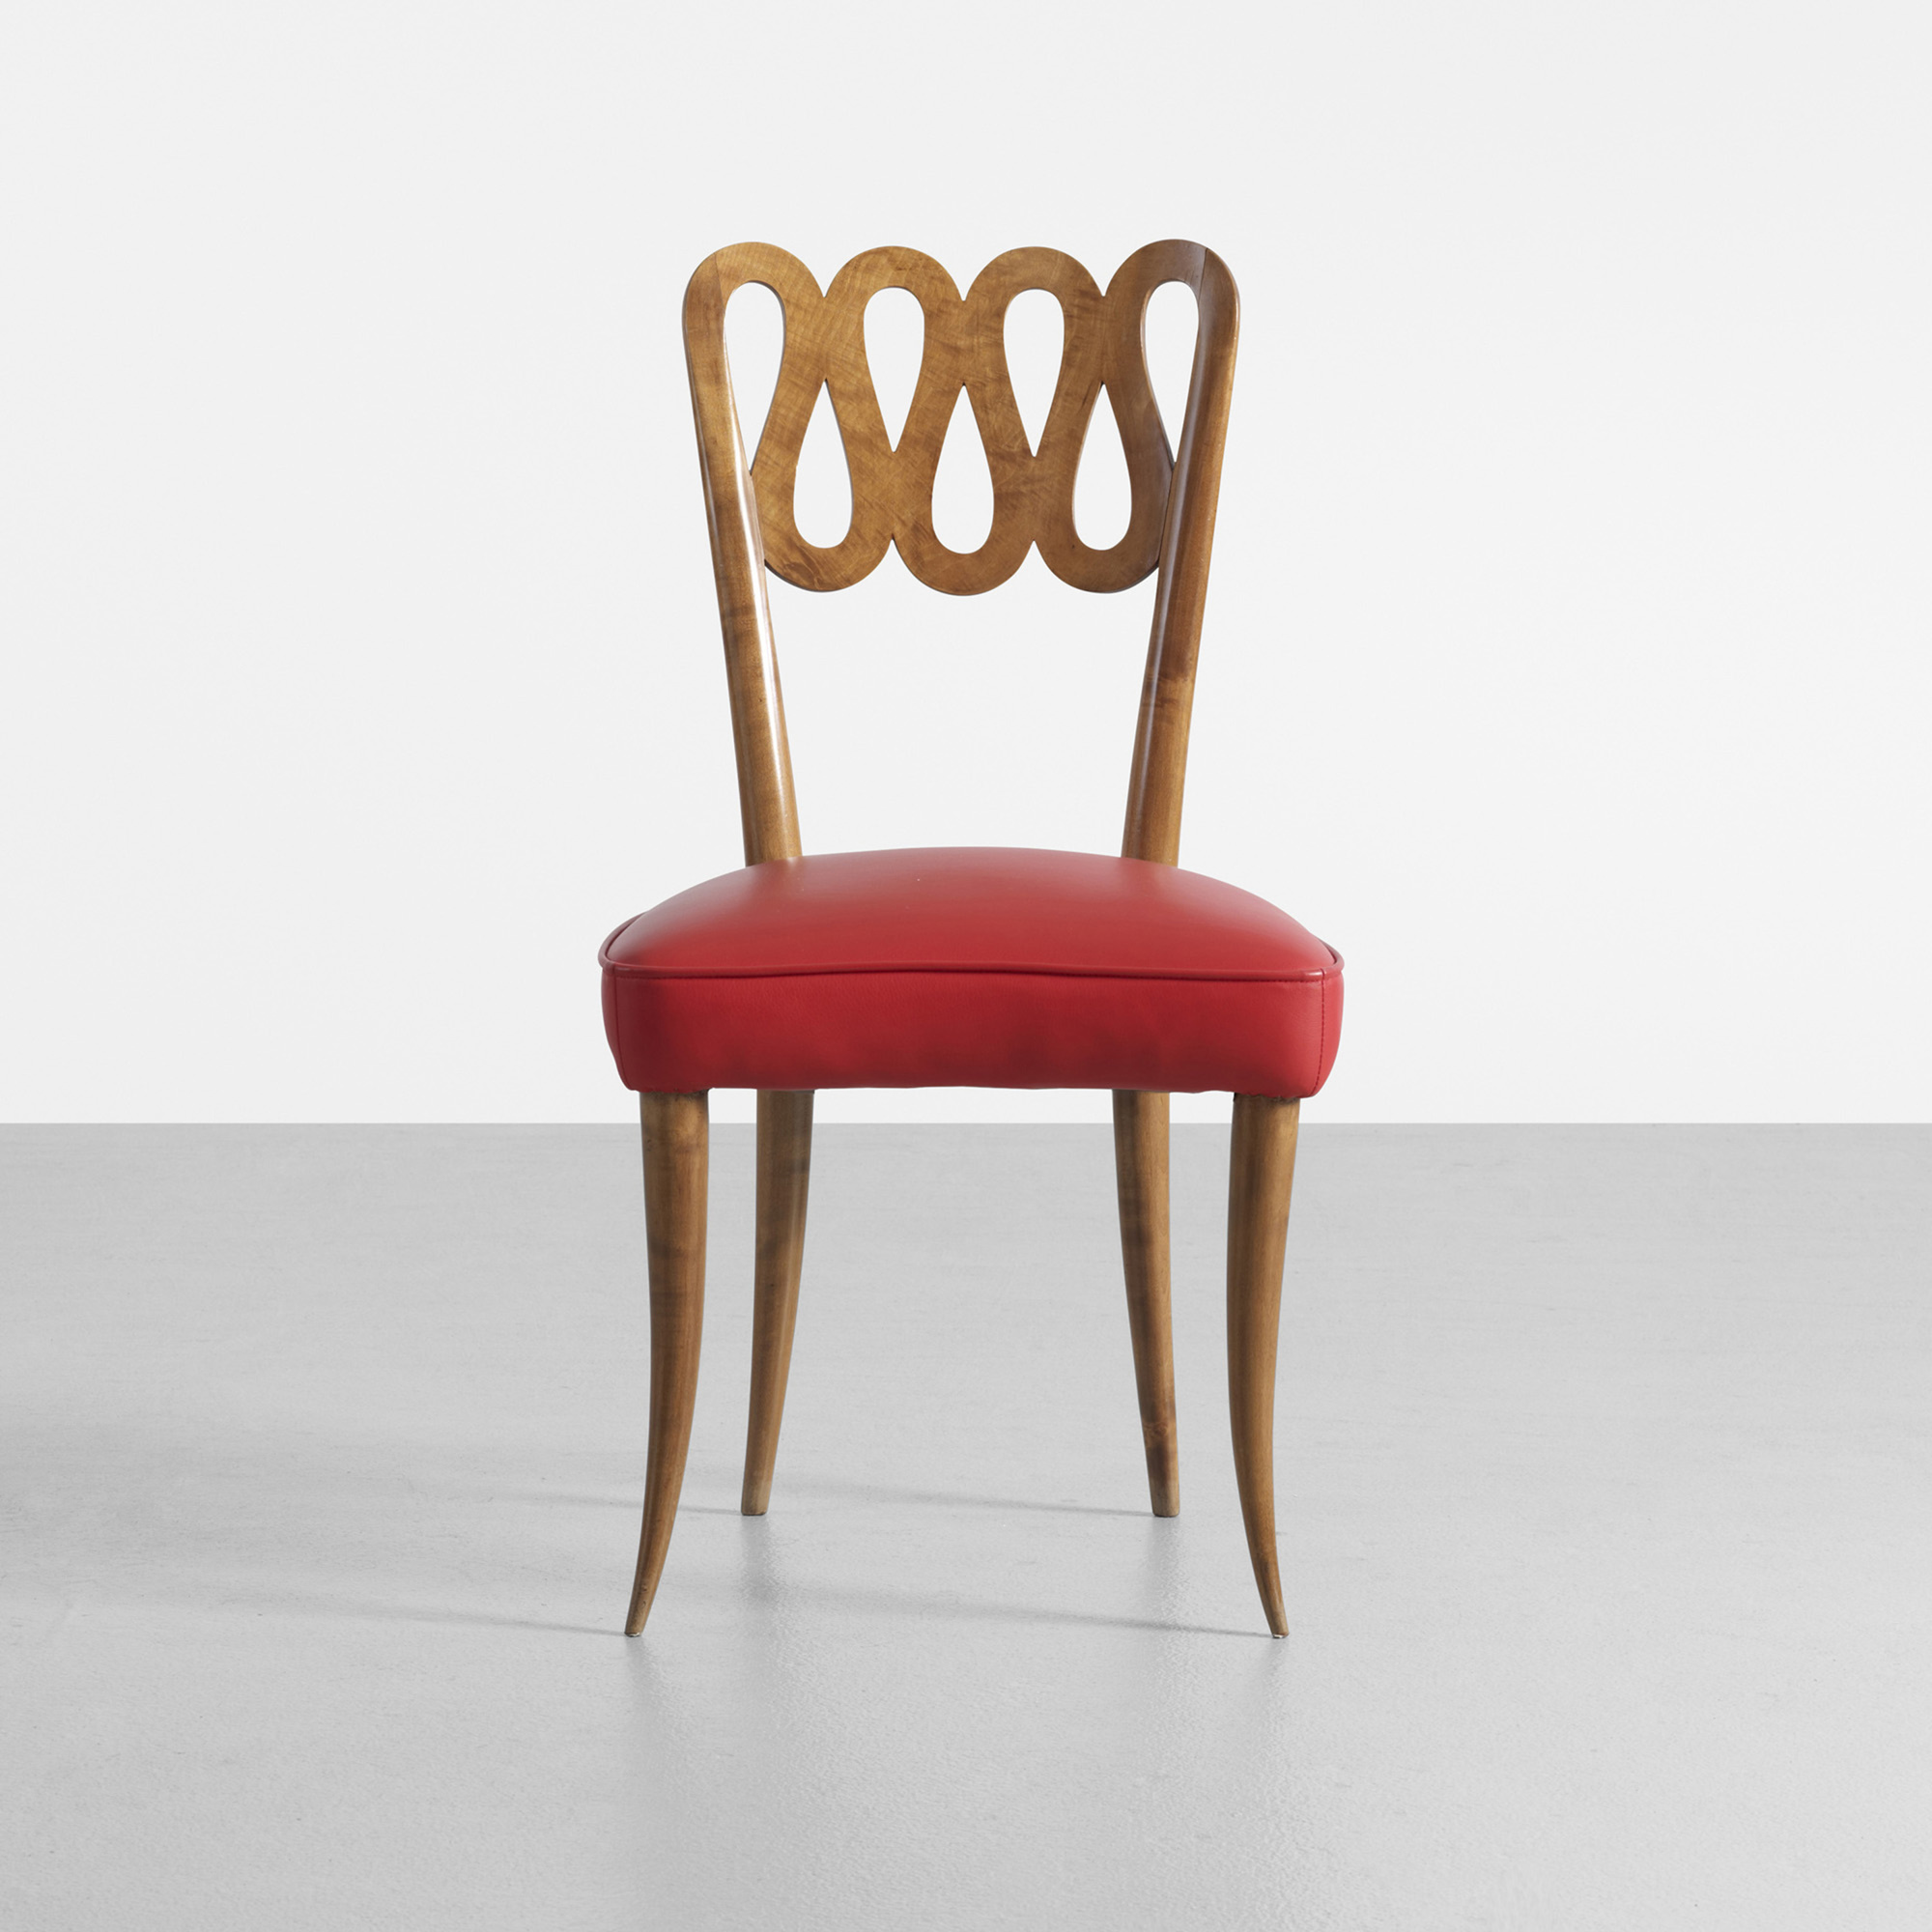 118 Gio Ponti Rare and early chair from Conti Contini